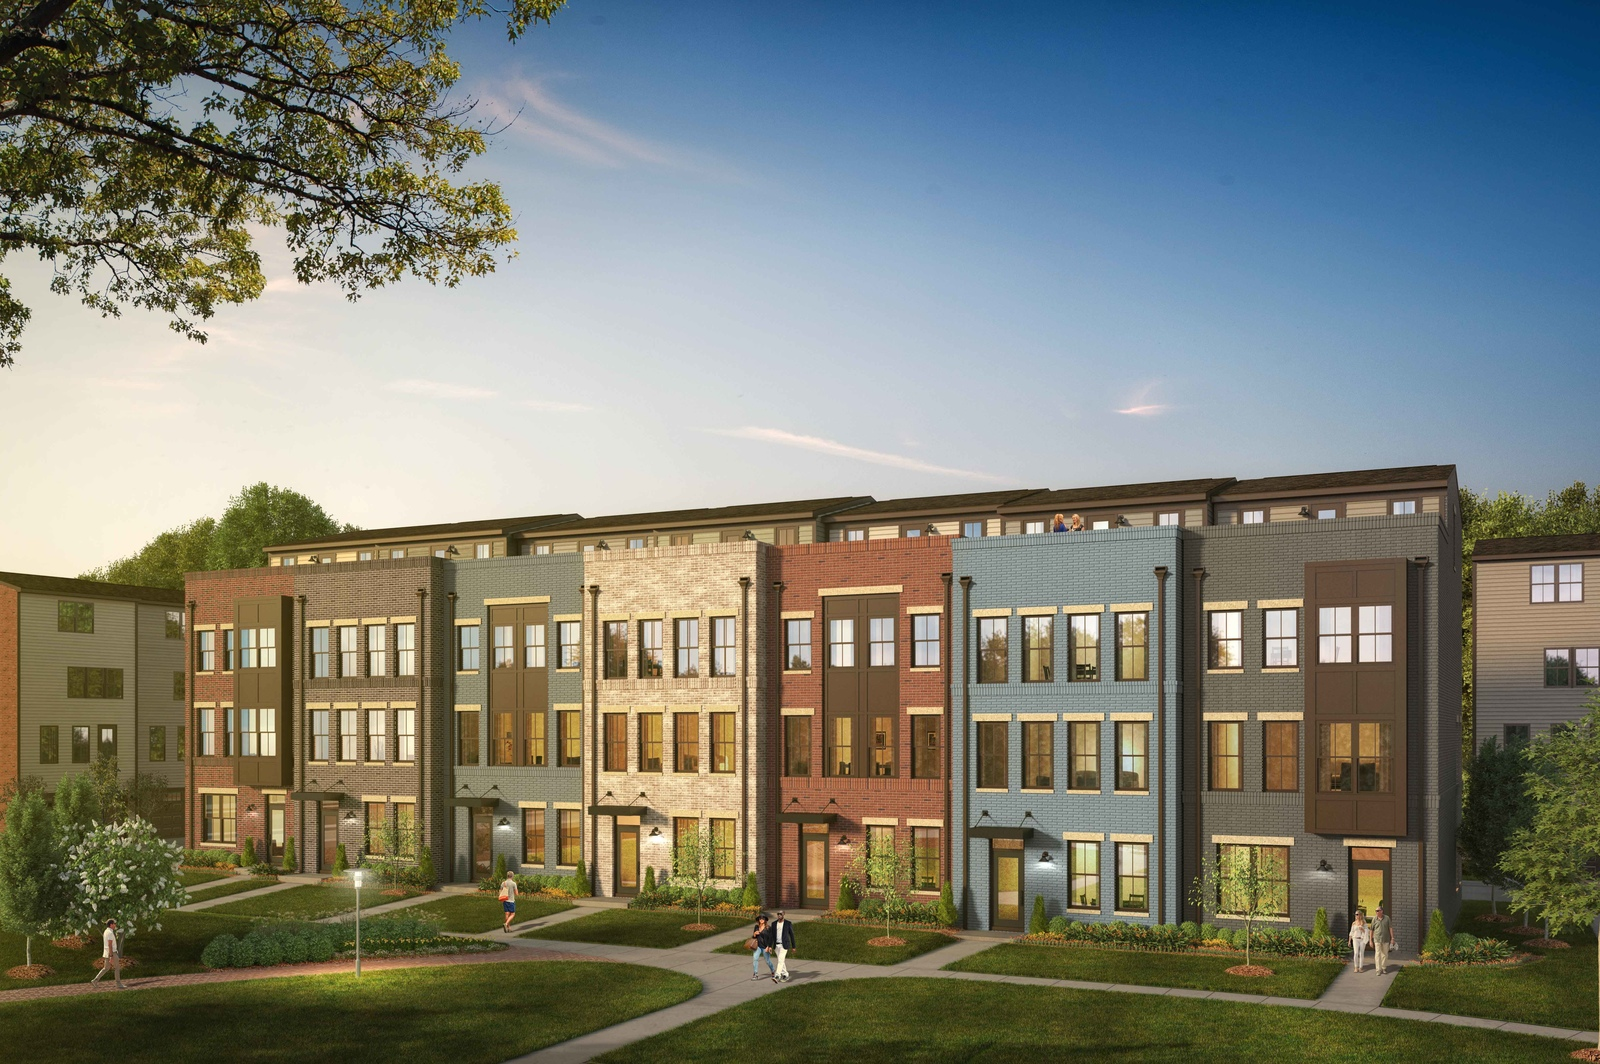 Our urban townhomes are arriving soon. Get VIP pricing by joining our Priority List today!